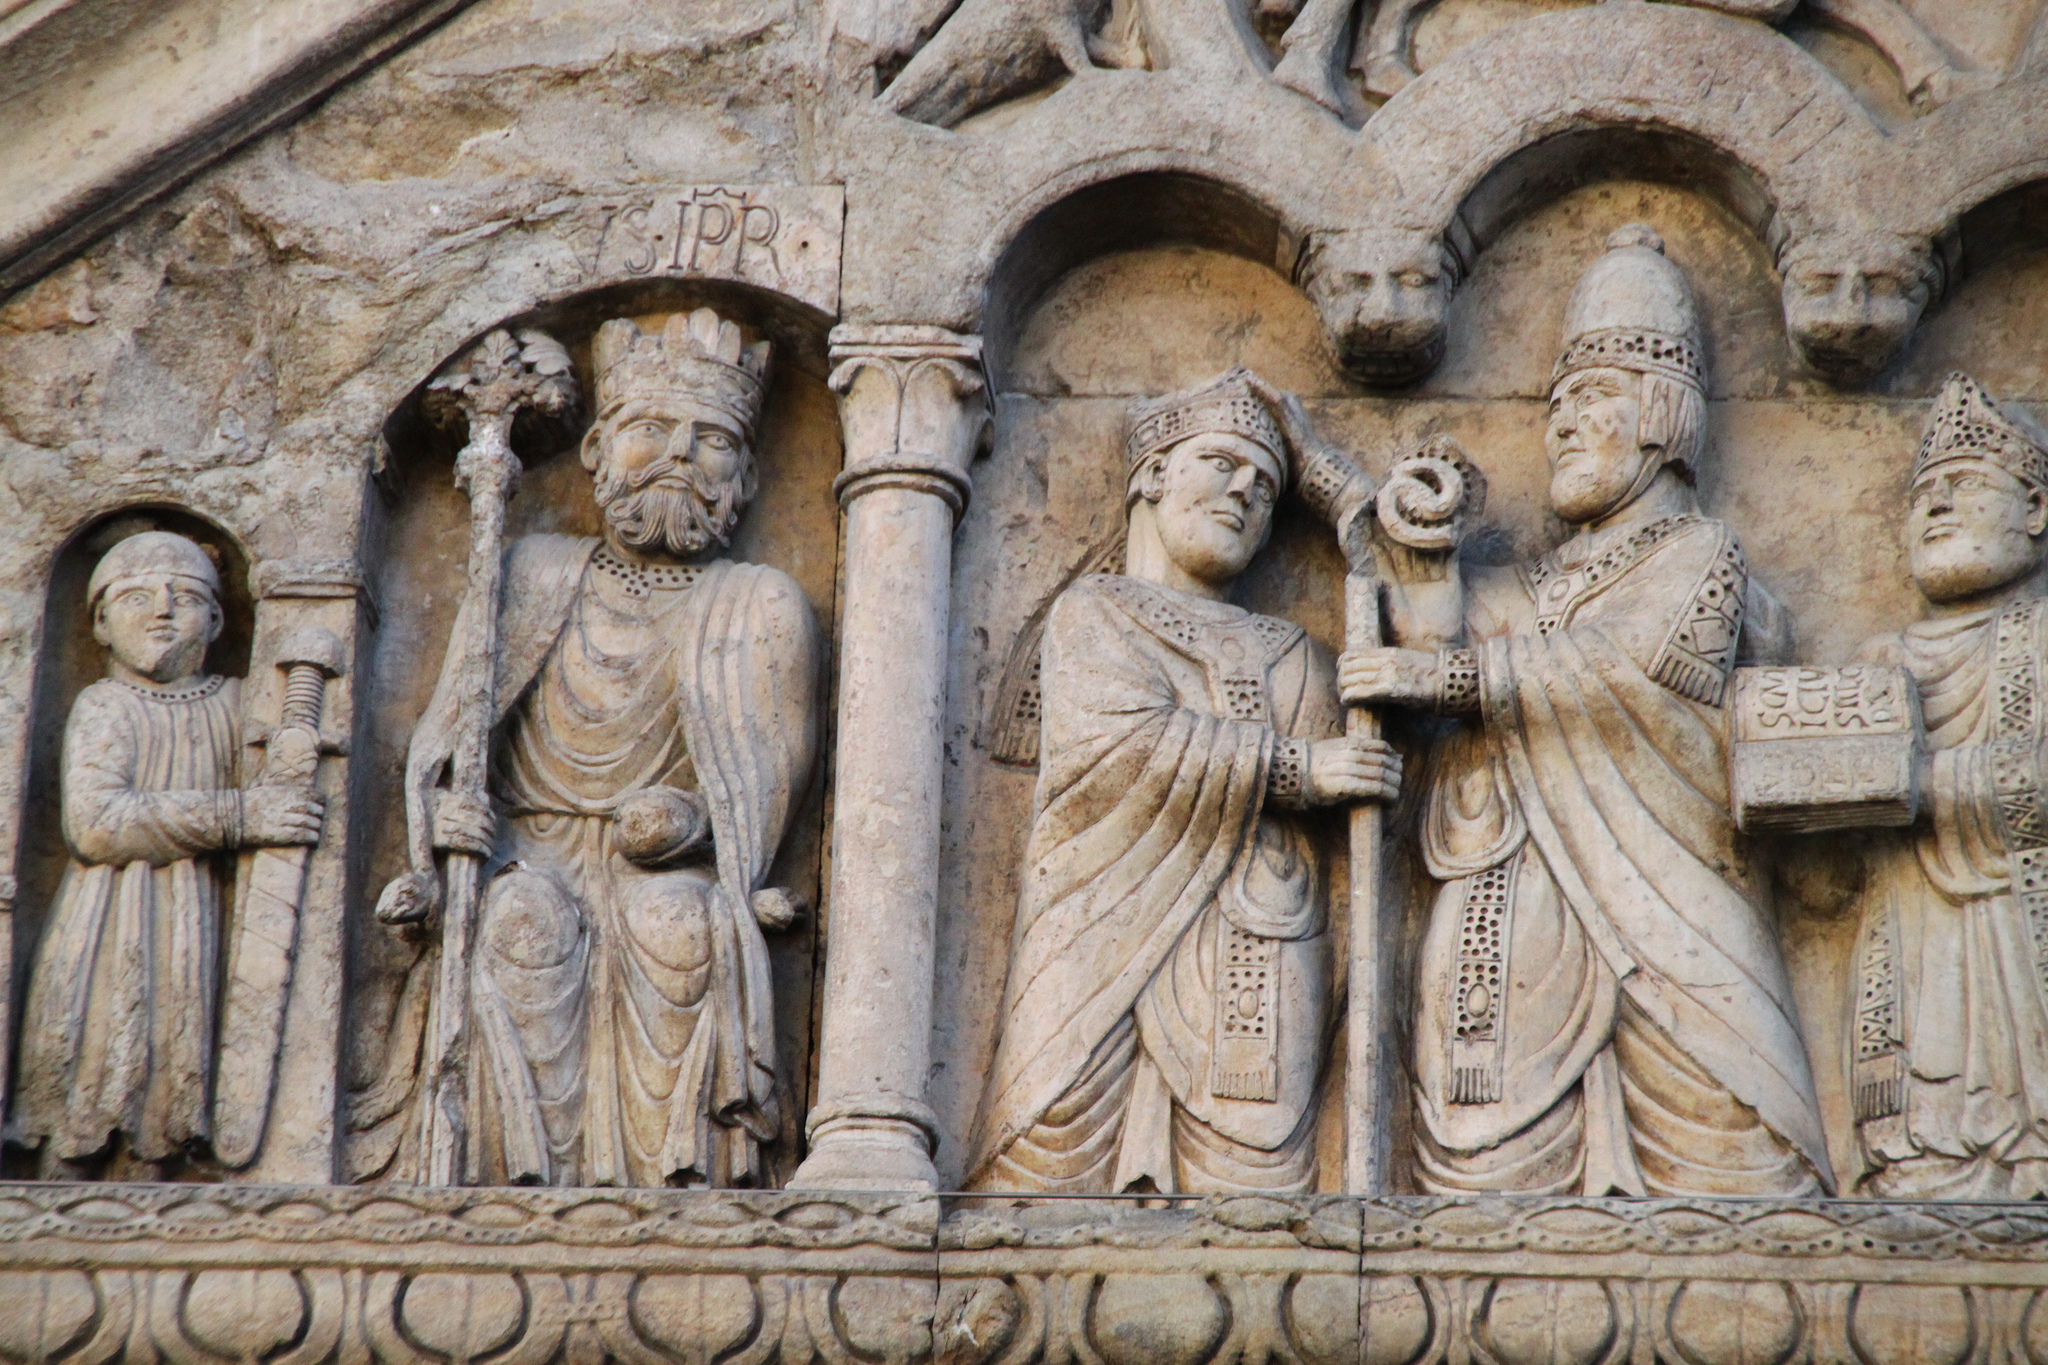 Charlemagne, name inscribed, crowned, seated, holding scepter in right hand and globe in left hand. Fidenza: Cathedral West Façade, north porch 1170-1220 attributed to Benedetto Antelami